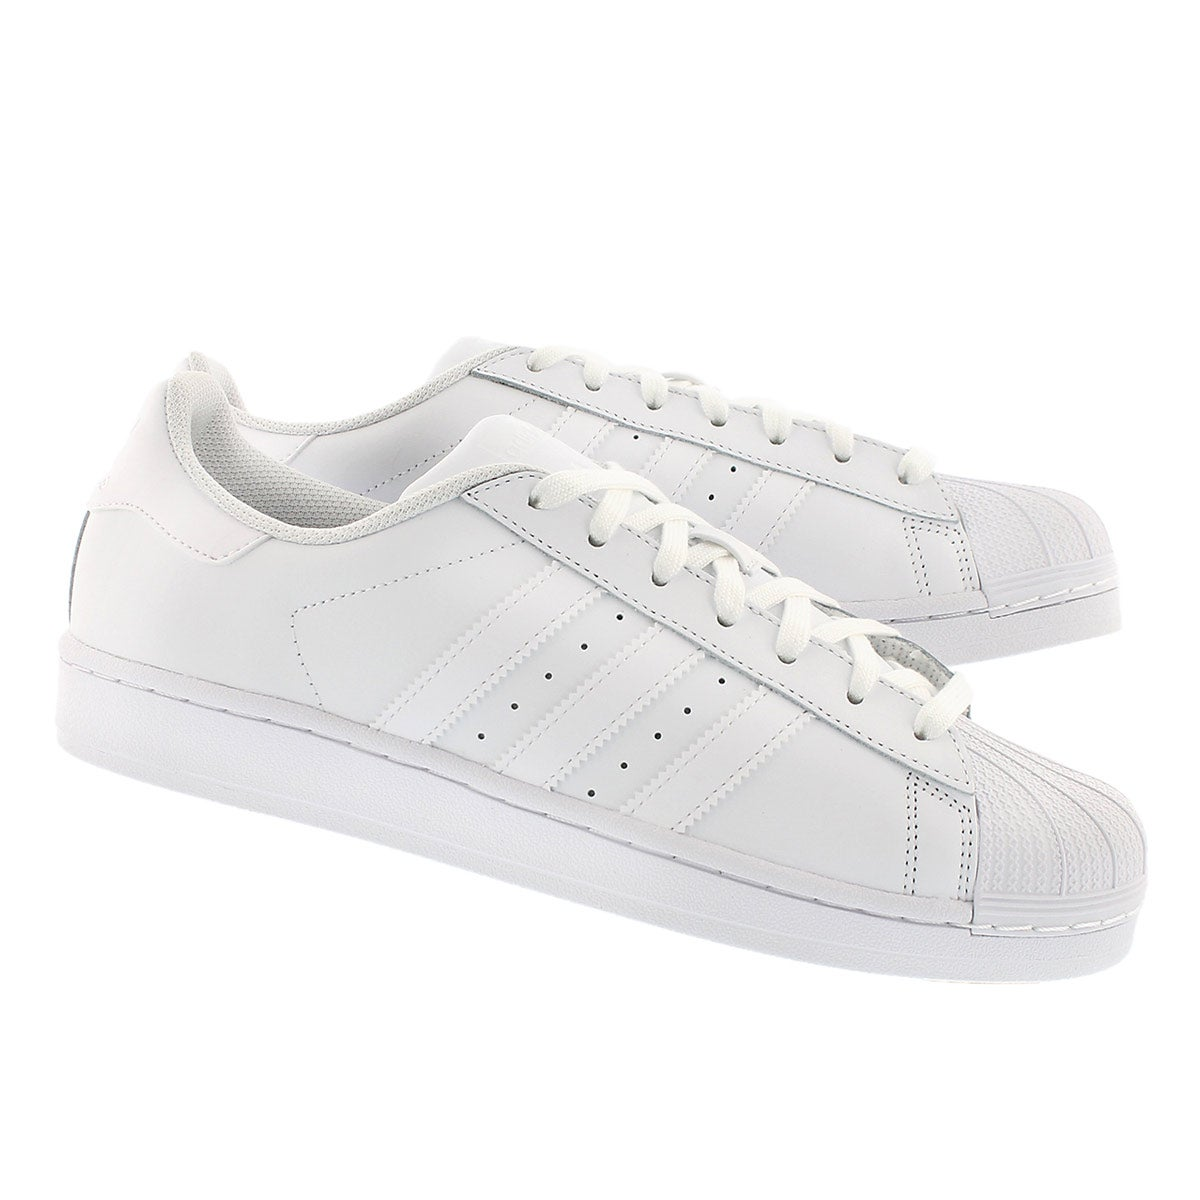 Mns Superstar wht/wht fashion sneaker